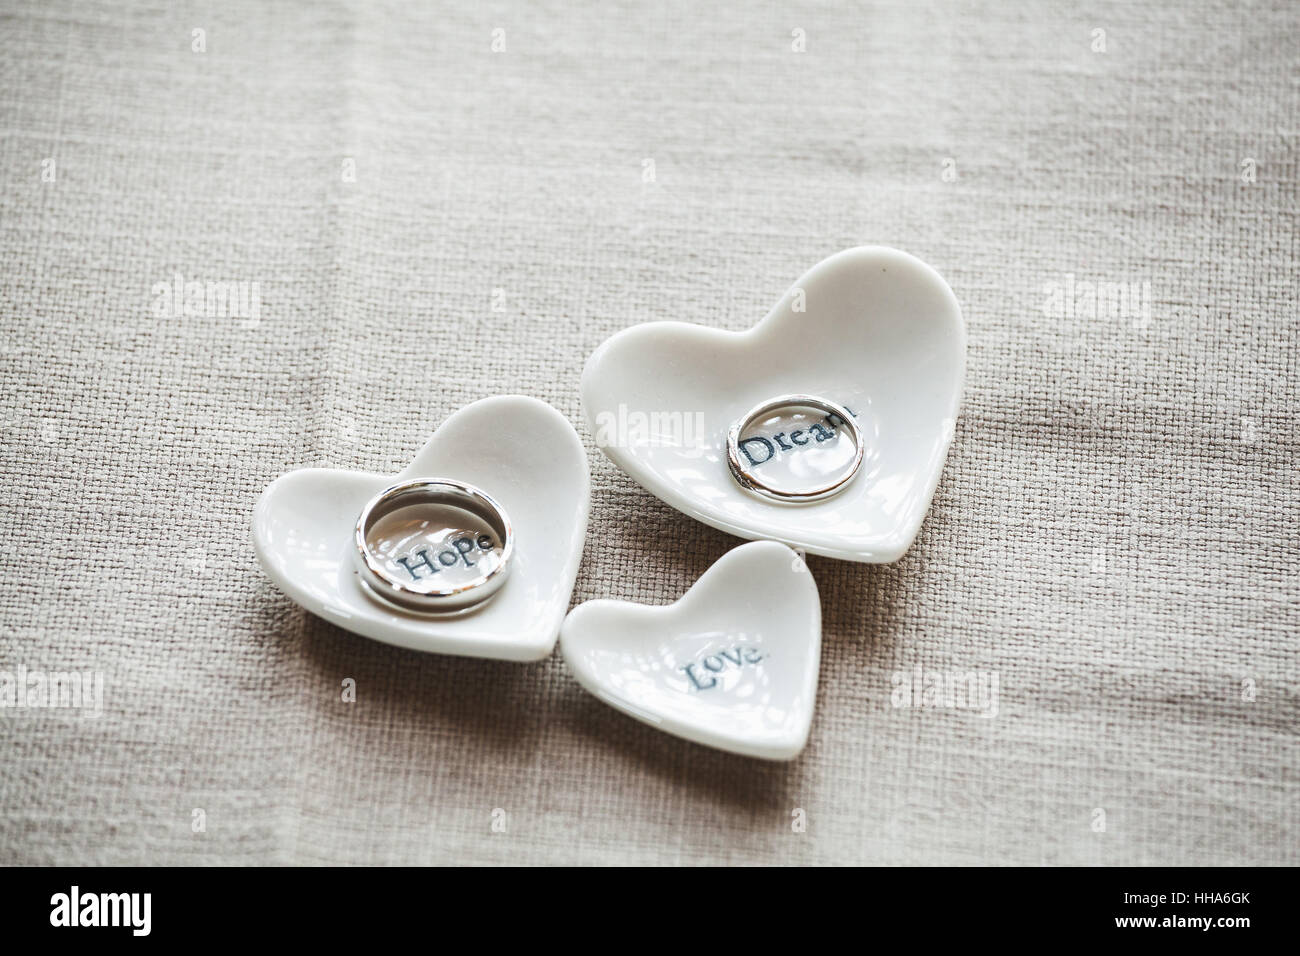 Wedding Rings On A Heart Shapes Recipient Decorations Inscribed With Hope Dream Love Words